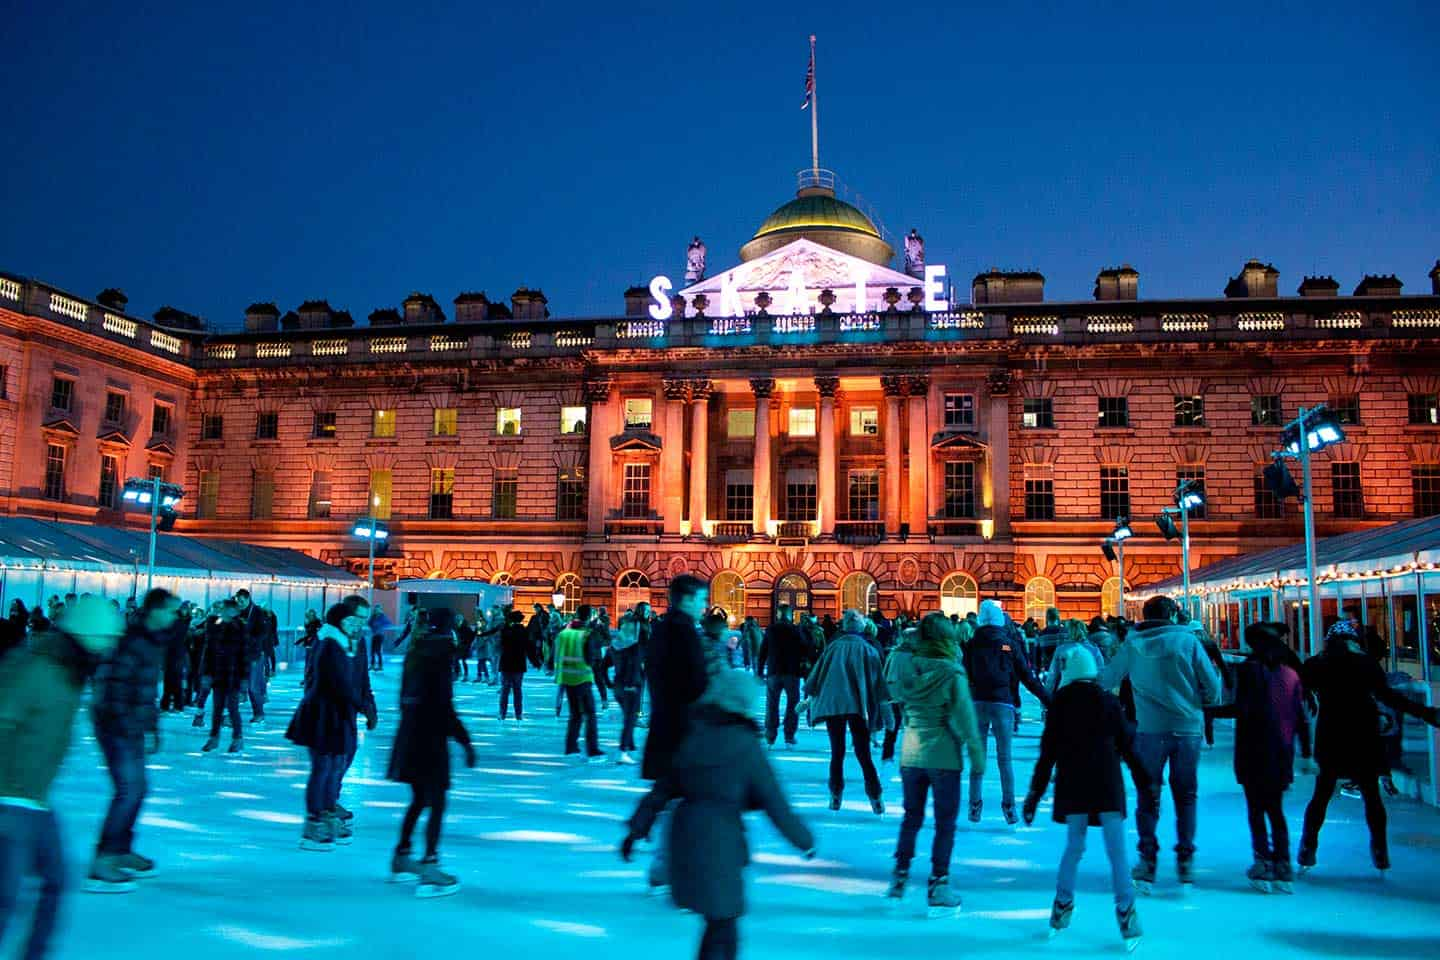 Image of Somerset House and its winter ice rink in London